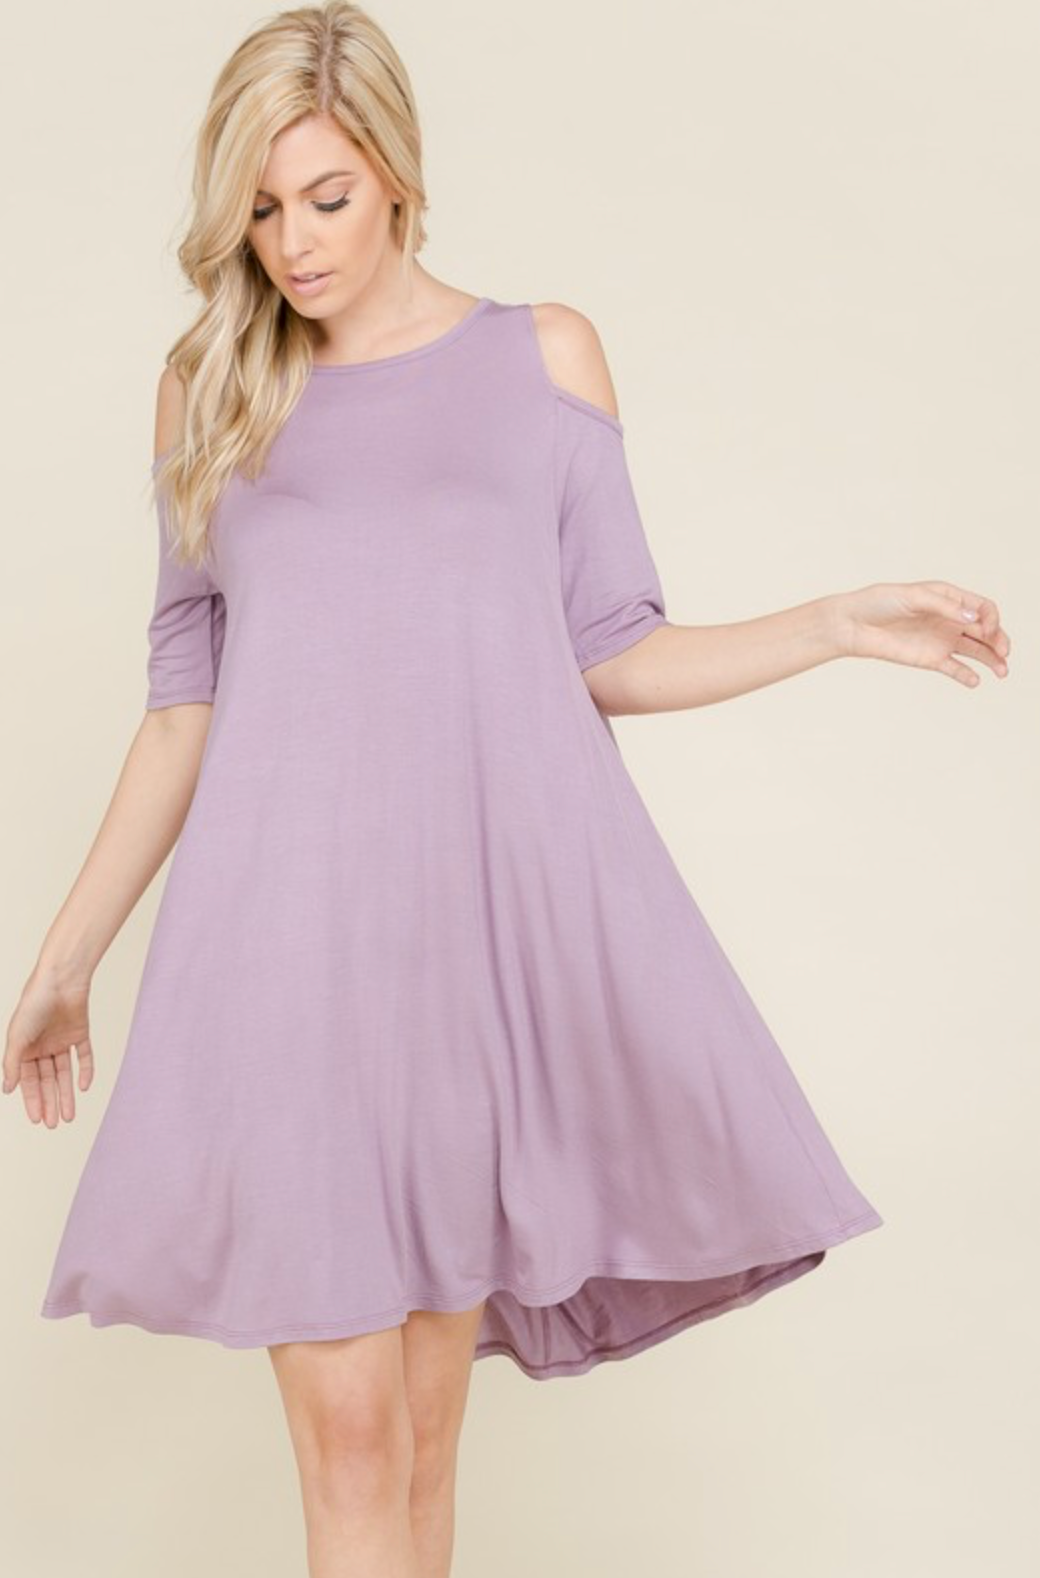 Curvy Cold Shoulder Flare Dress - Dusty Lavender